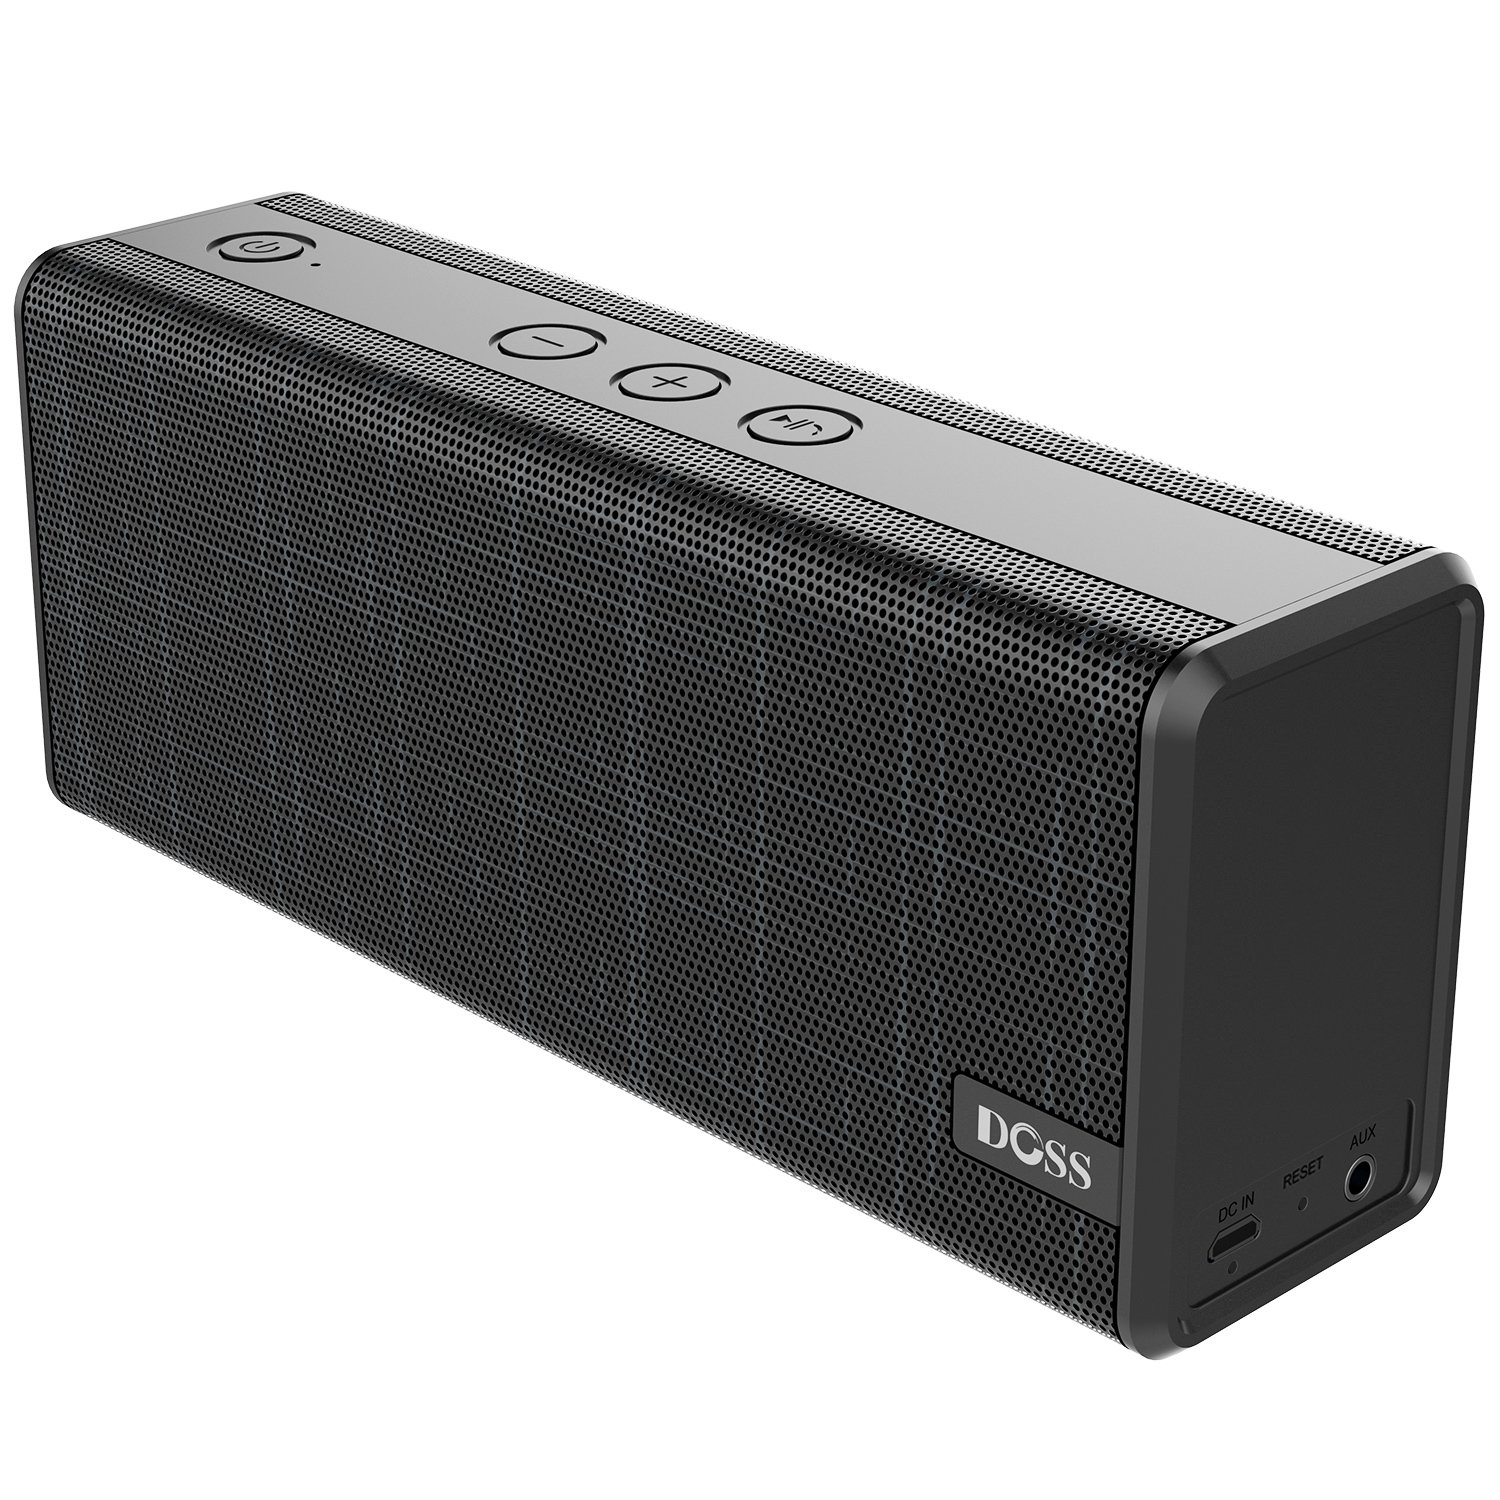 DOSS SoundBox Color Portable Wireless Bluetooth Speakers with 12W Stereo Sound and Enhanced Bass, 12H Playtime and Handsfree for Phone, Tablet, TV, etc